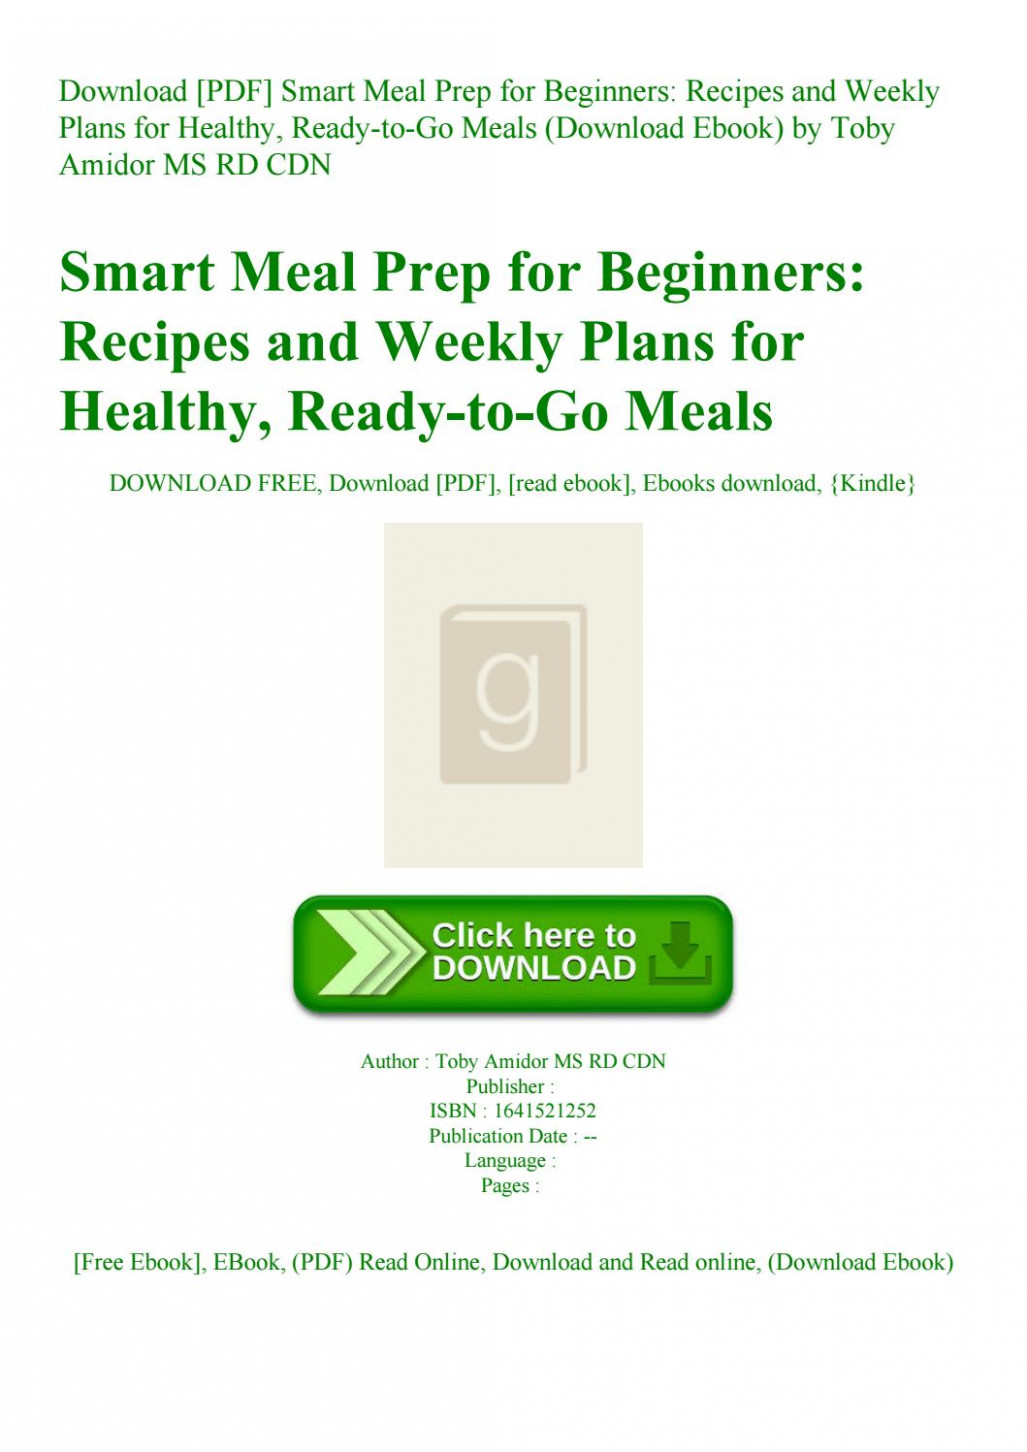 Download [PDF] Smart Meal Prep for Beginners Recipes and ..